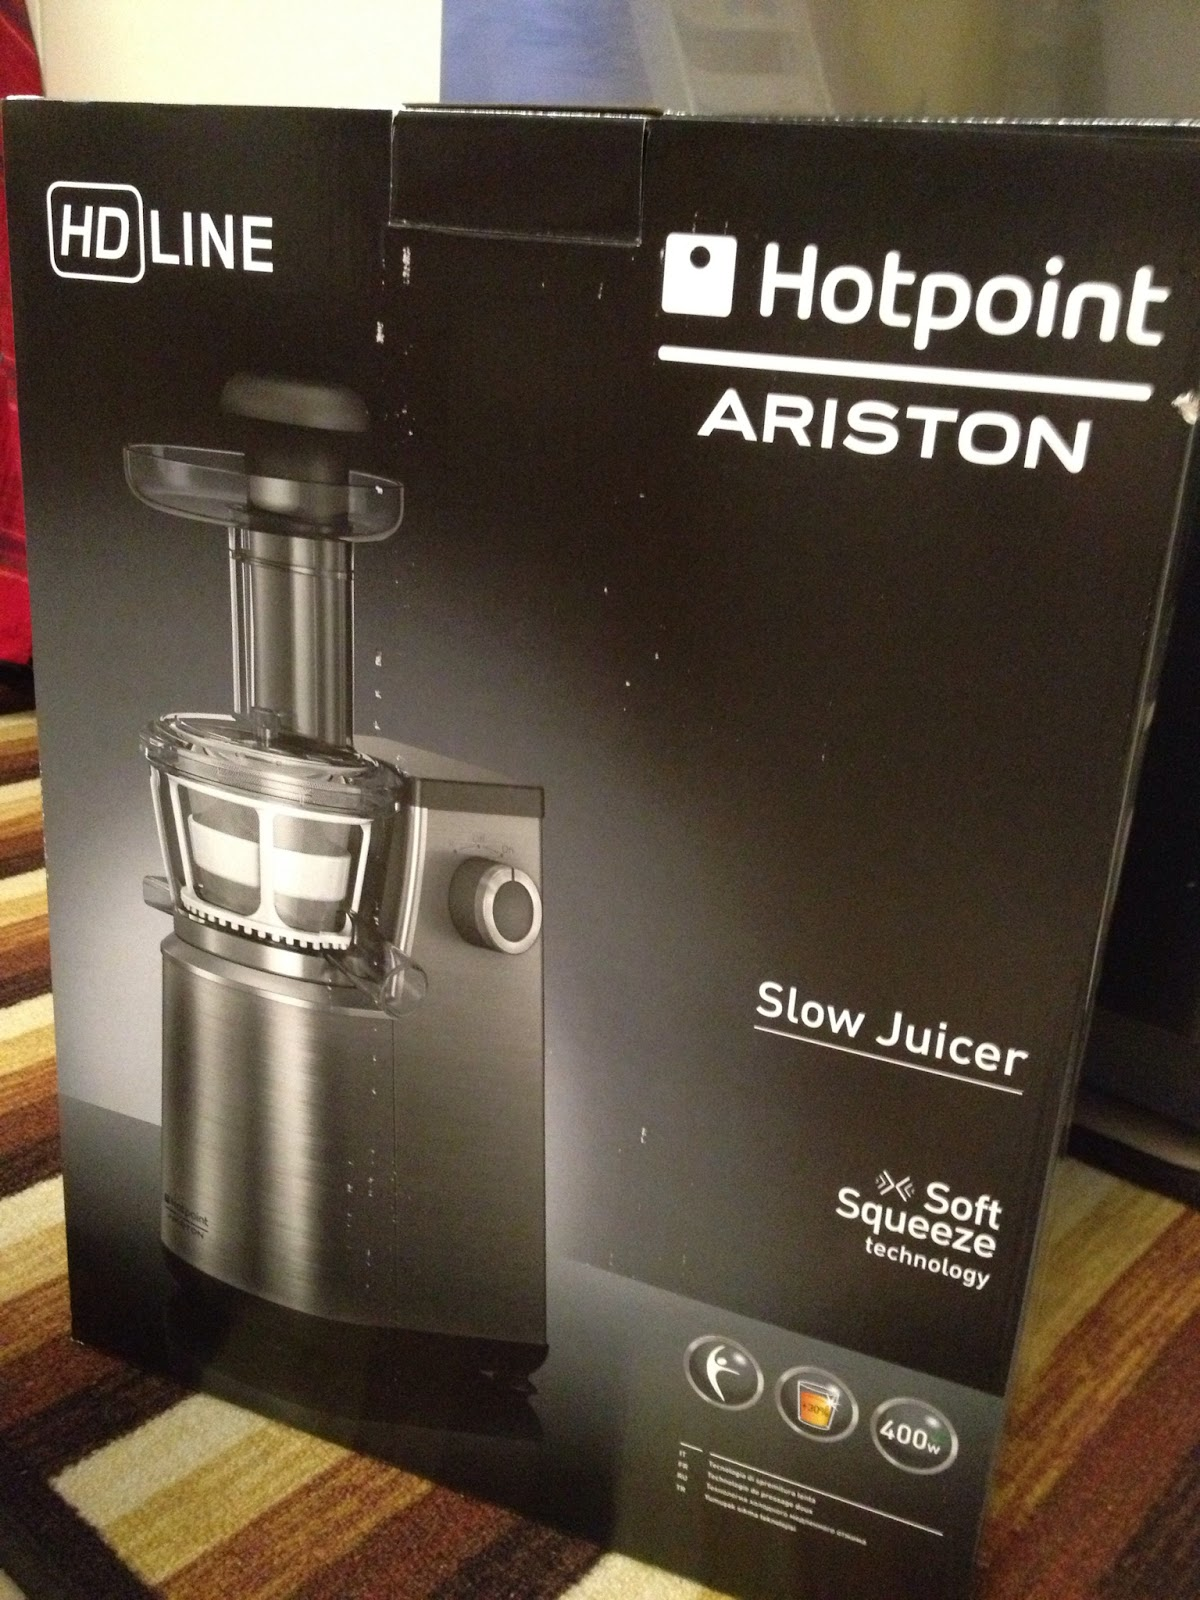 Slow Juicer Hotpoint Istruzioni : ????Hotpoint ariston Slow juicer - ??,????